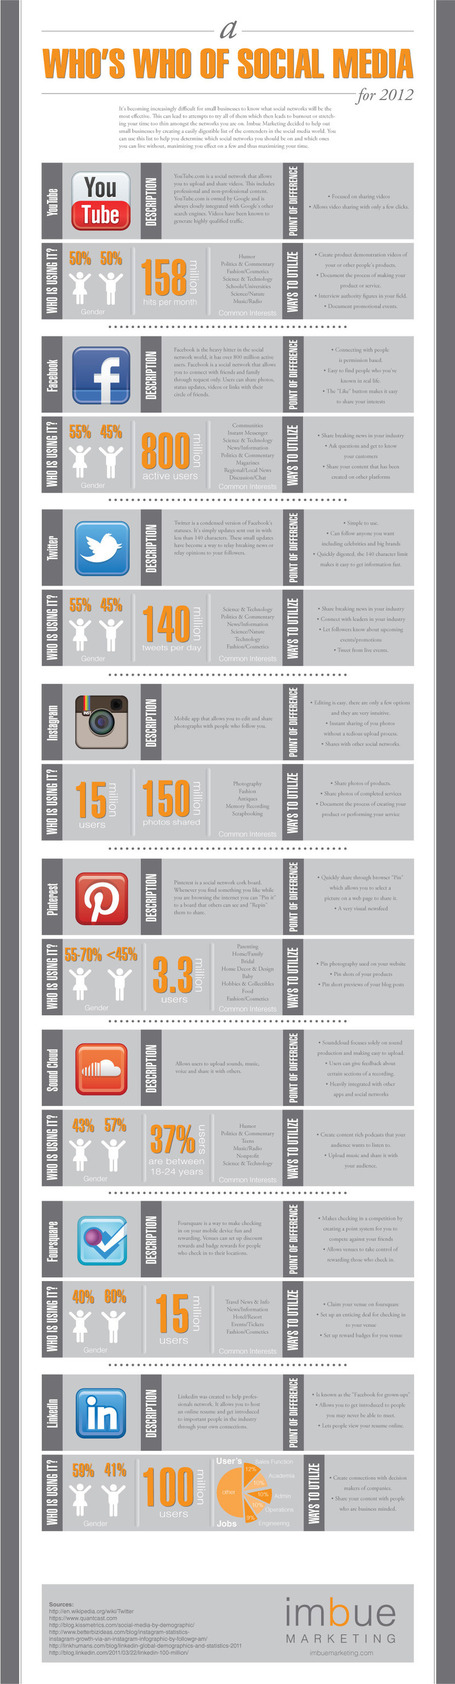 Facebook, Twitter, LinkedIn, Pinterest – The Who's Who Of Social Media [INFOGRAPHIC] - Imbue Media via Kurat | Content Curation Tools | Scoop.it